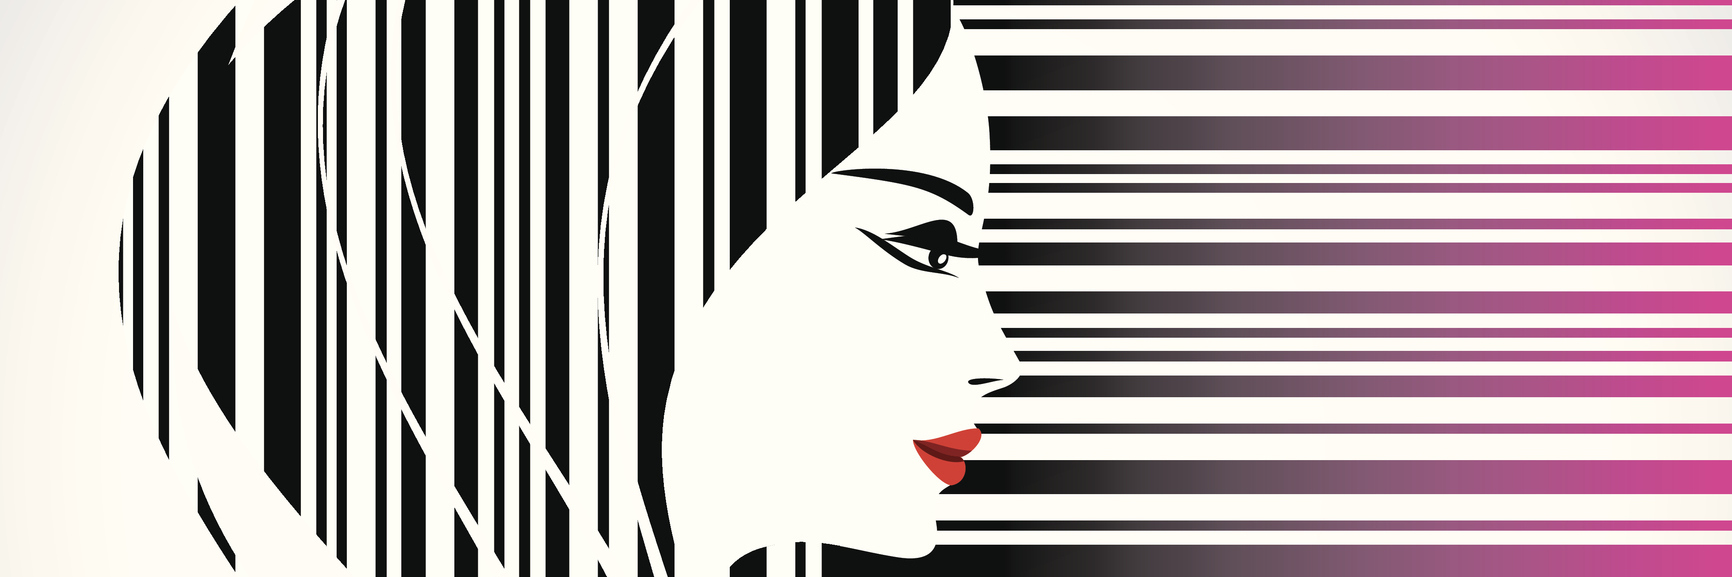 An illustration of a woman, who also flows into a barcode concept.